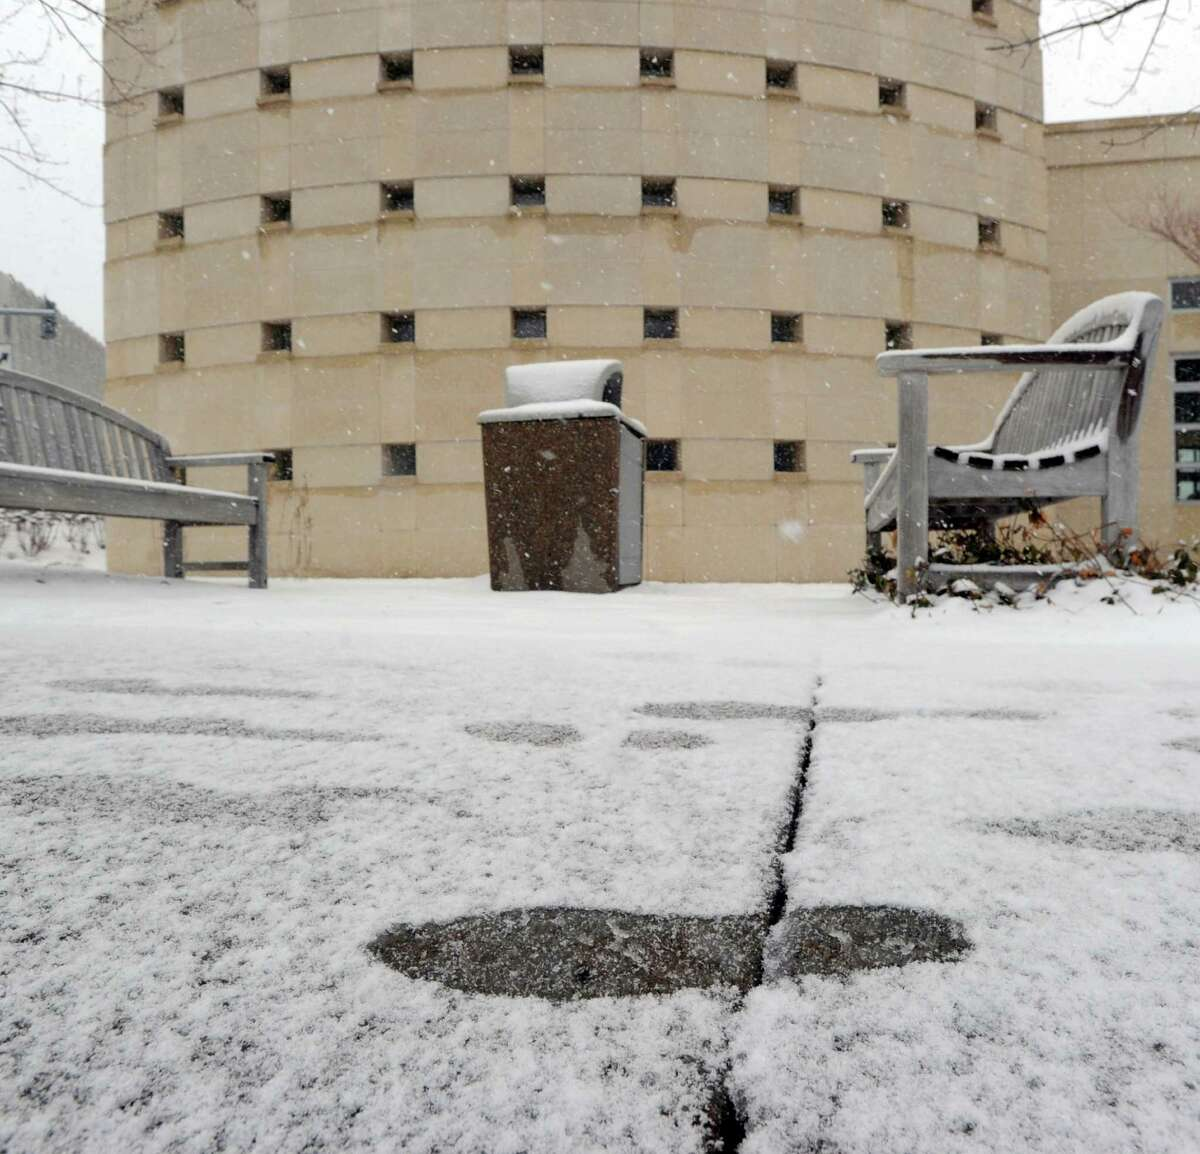 A foot print in the snow on a walkway outside of Greenwich Library during the snow storm that hit the area, Greenwich, Conn., Friday, March 20, 2015. A snow storm could hit Greenwich this Saturday and Sunday.